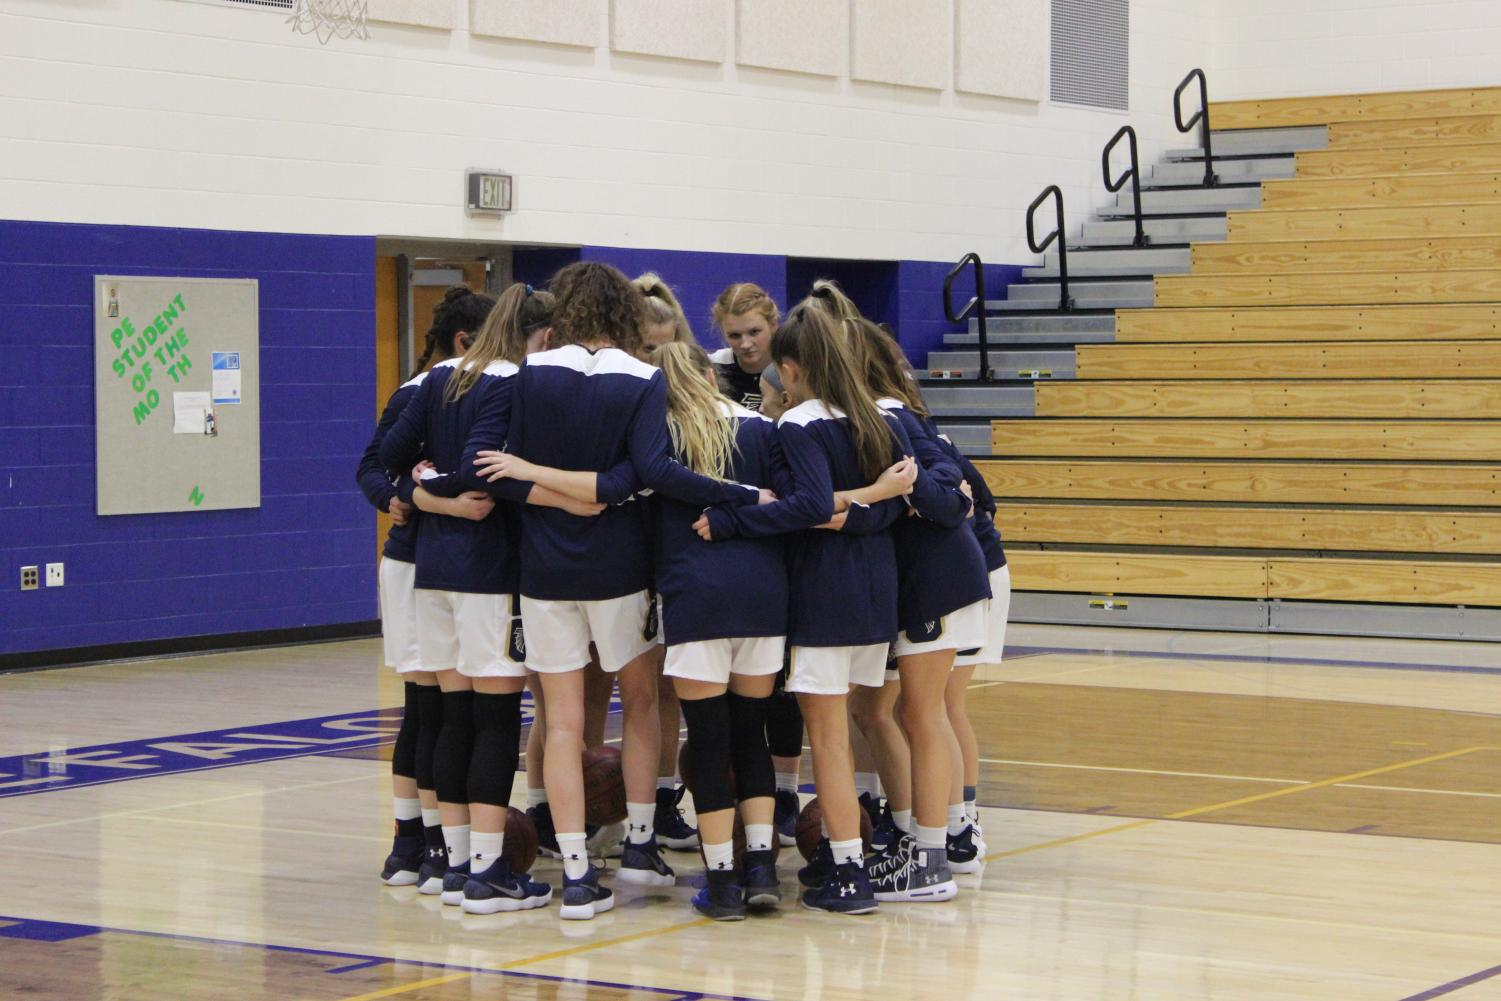 The teamhuddles up before taking the court